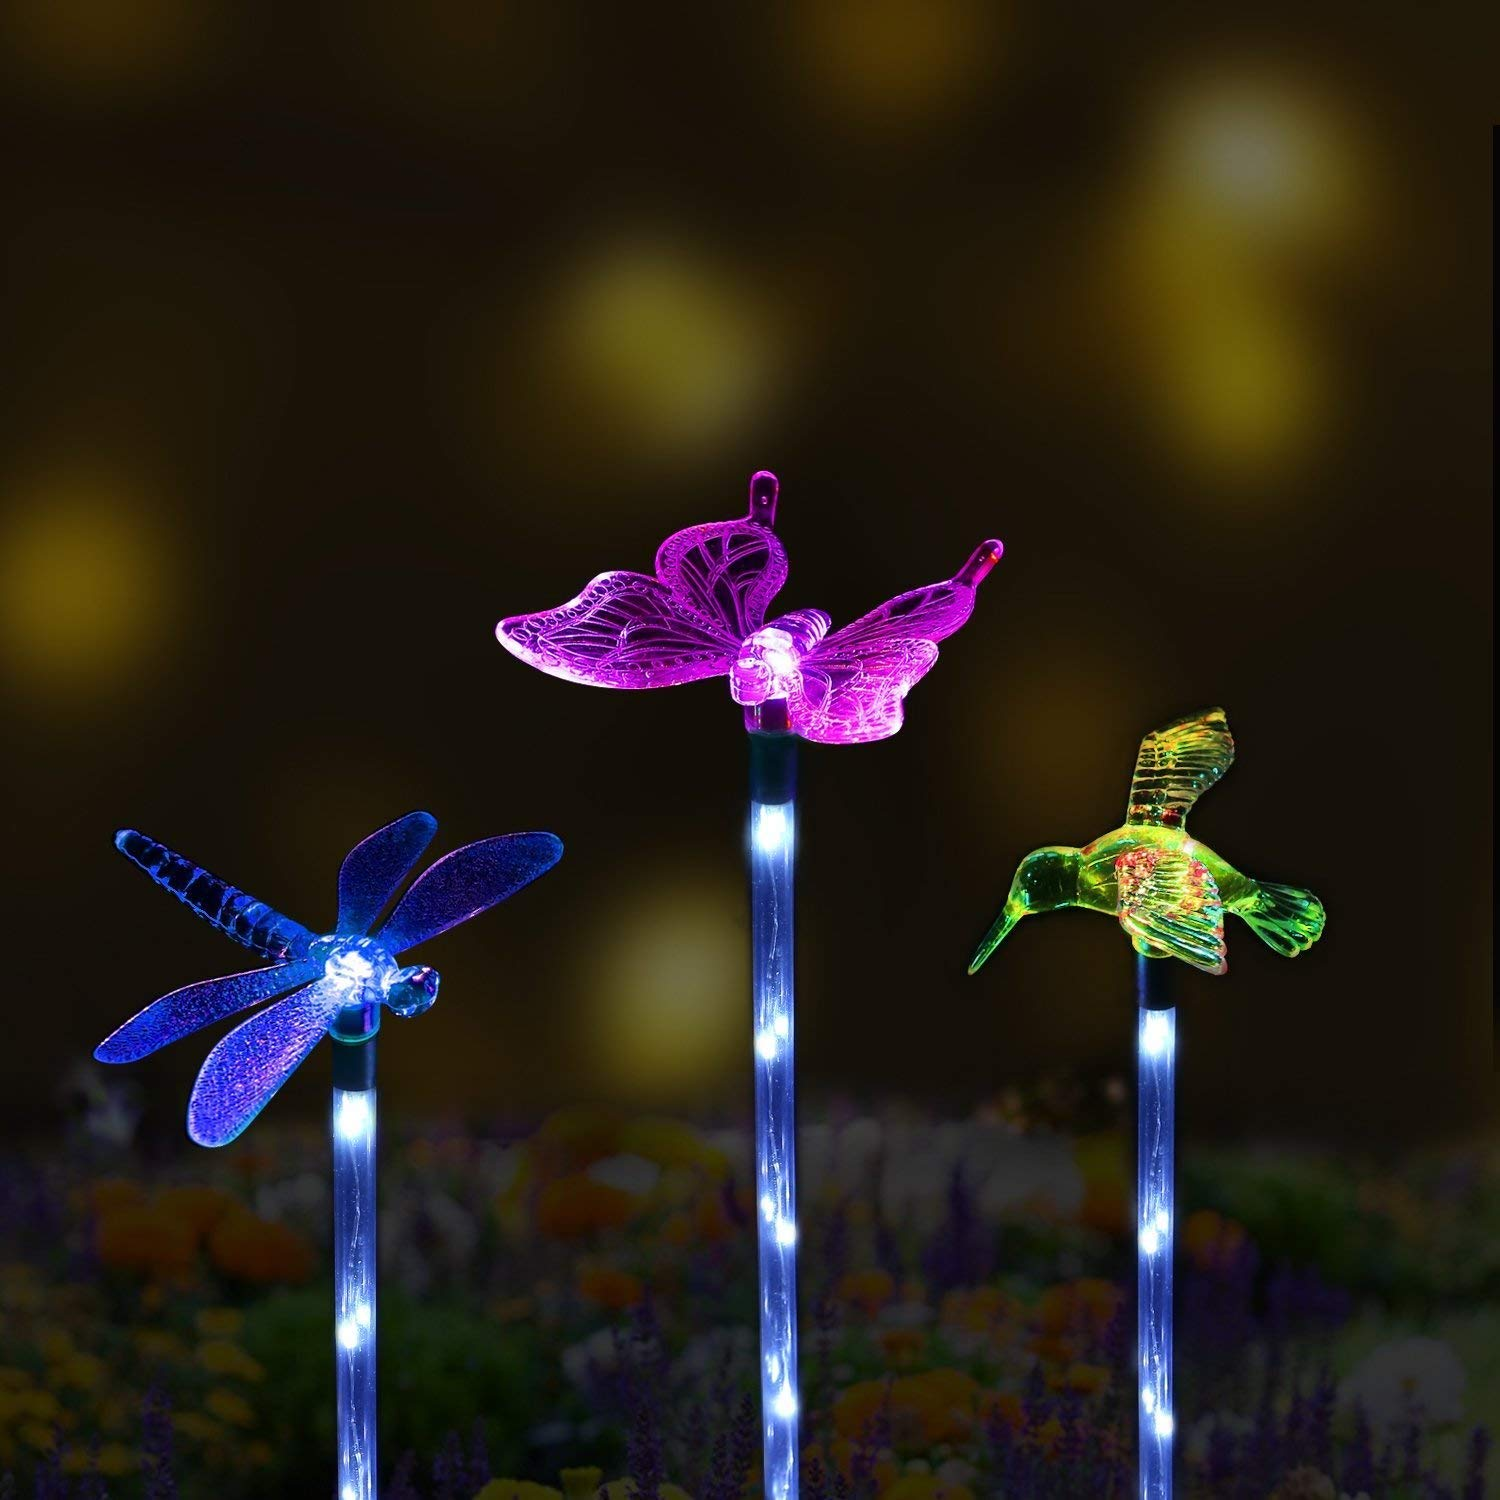 NNBB Solar Garden Lights Outdoor- 3 Pack SurLight Solar Garden Lights Color Changing Garden Stake Light,Decorative Waterproof Night Lights,Warm White LED Stainless Steel,Lamp for Patio,Lawn,Backyard